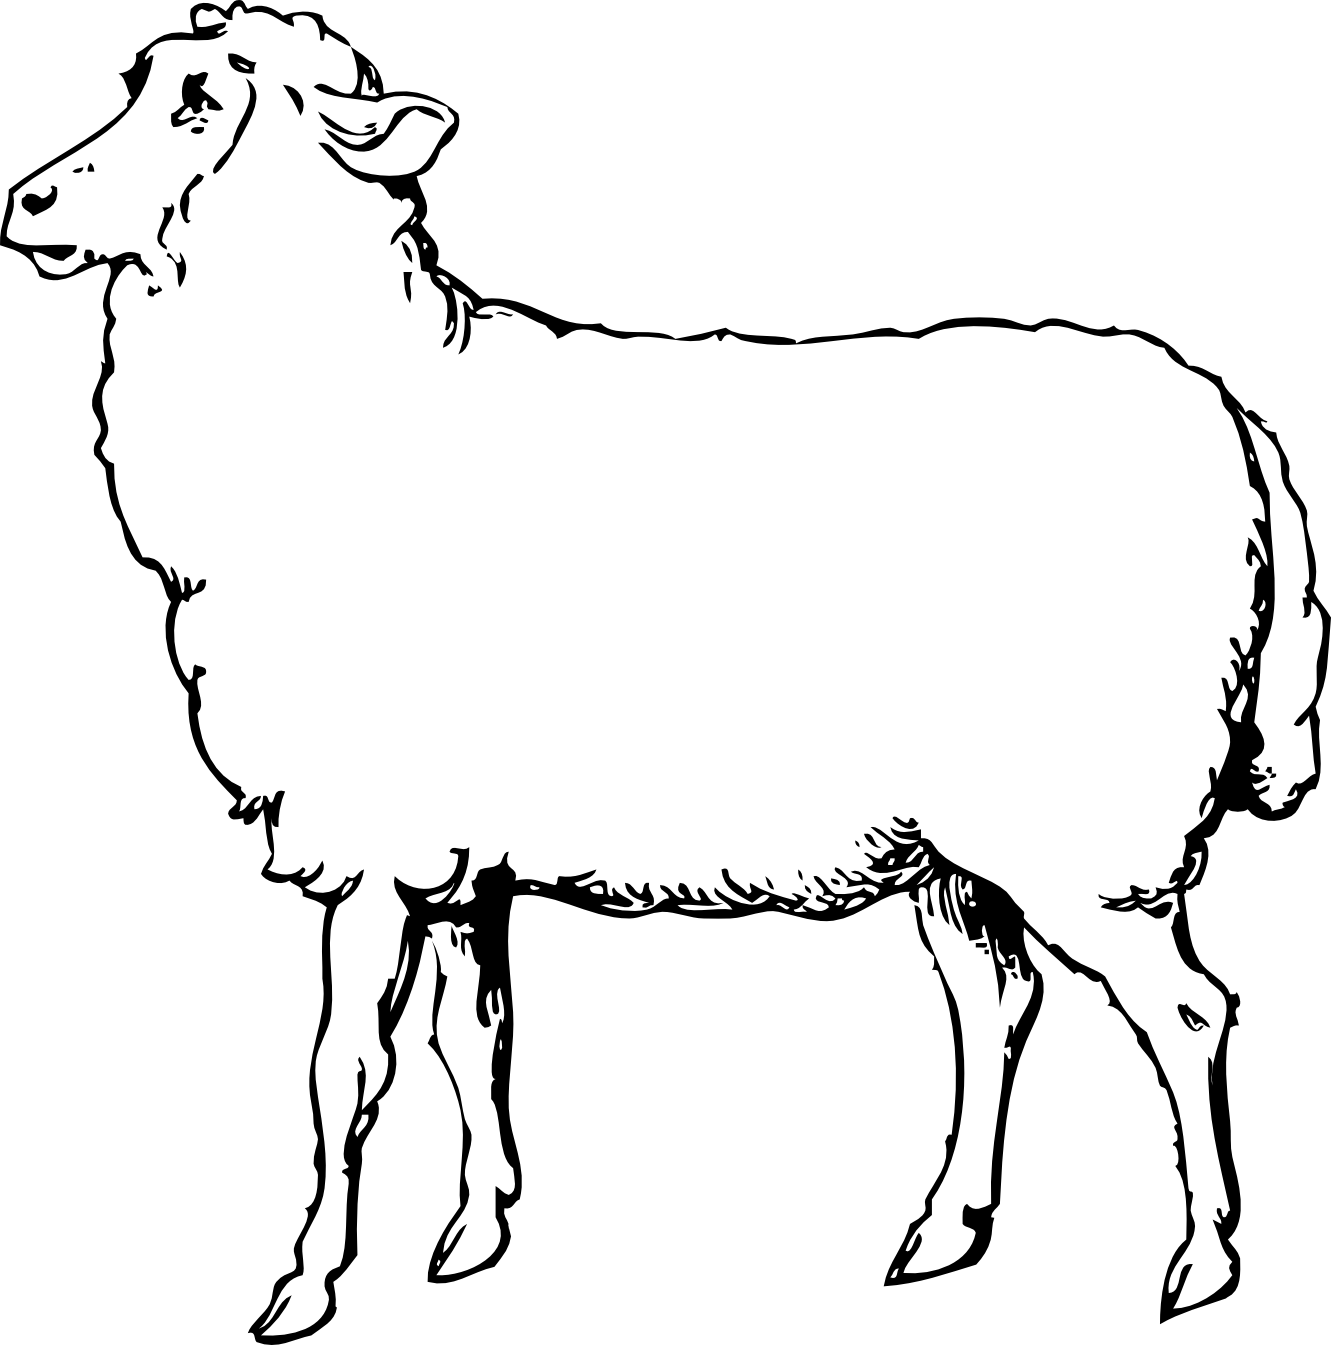 Drawing sheep illustrated